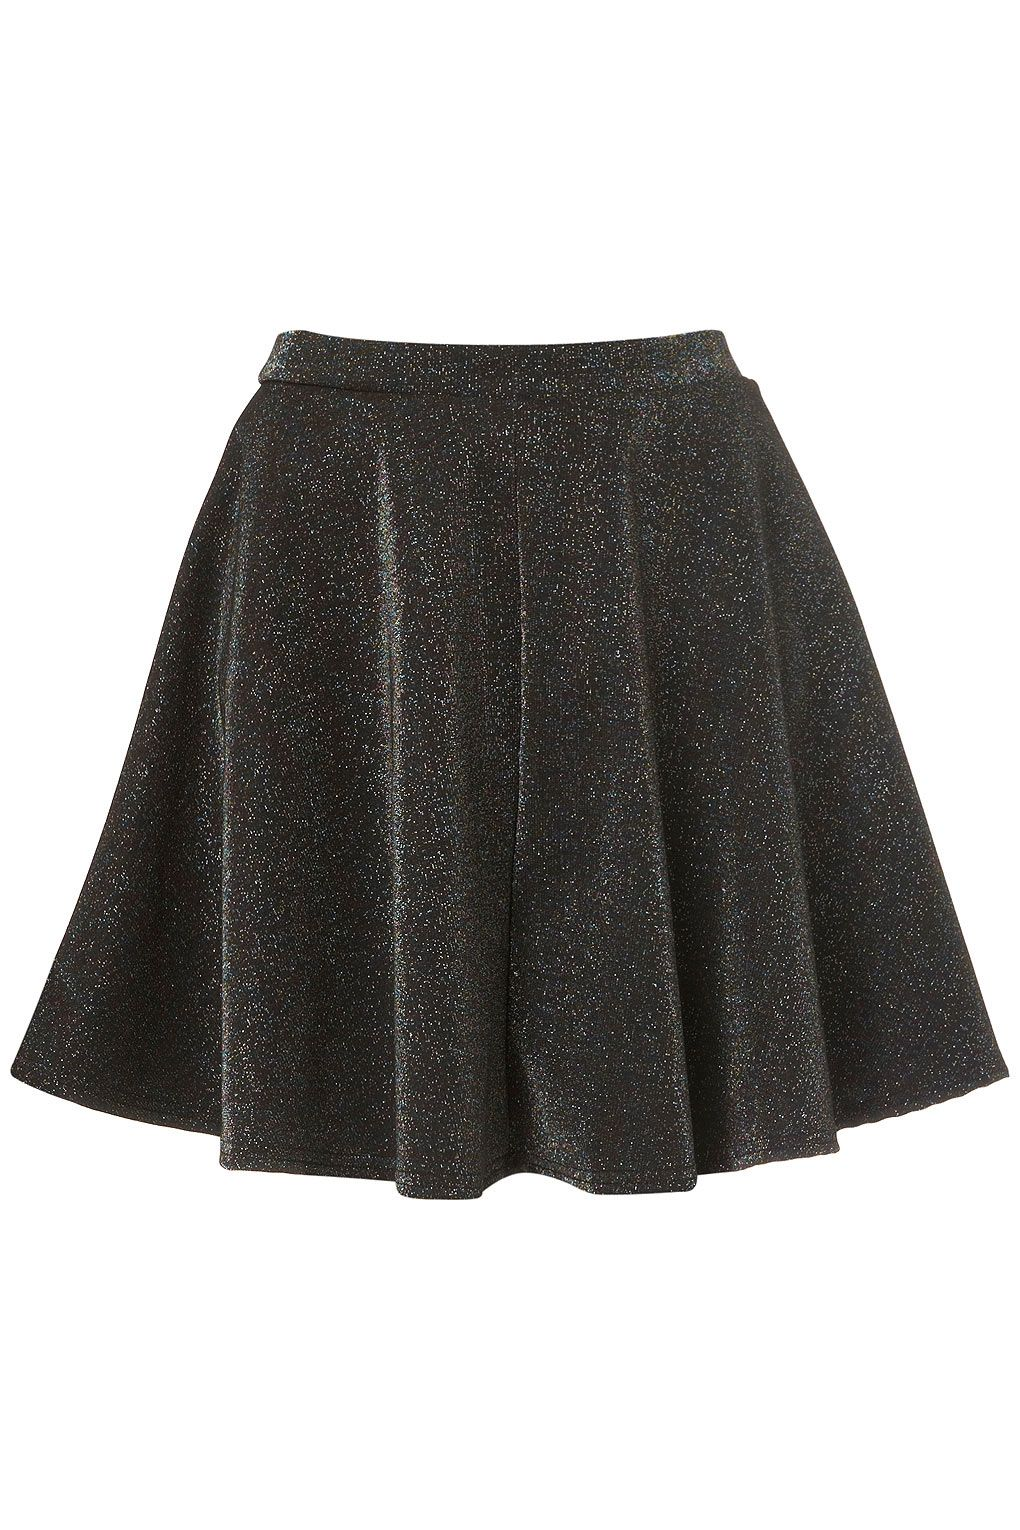 8d53de4114d3 black glitter skater skirt | nude coverings? | Skater Skirt, Skirts ...